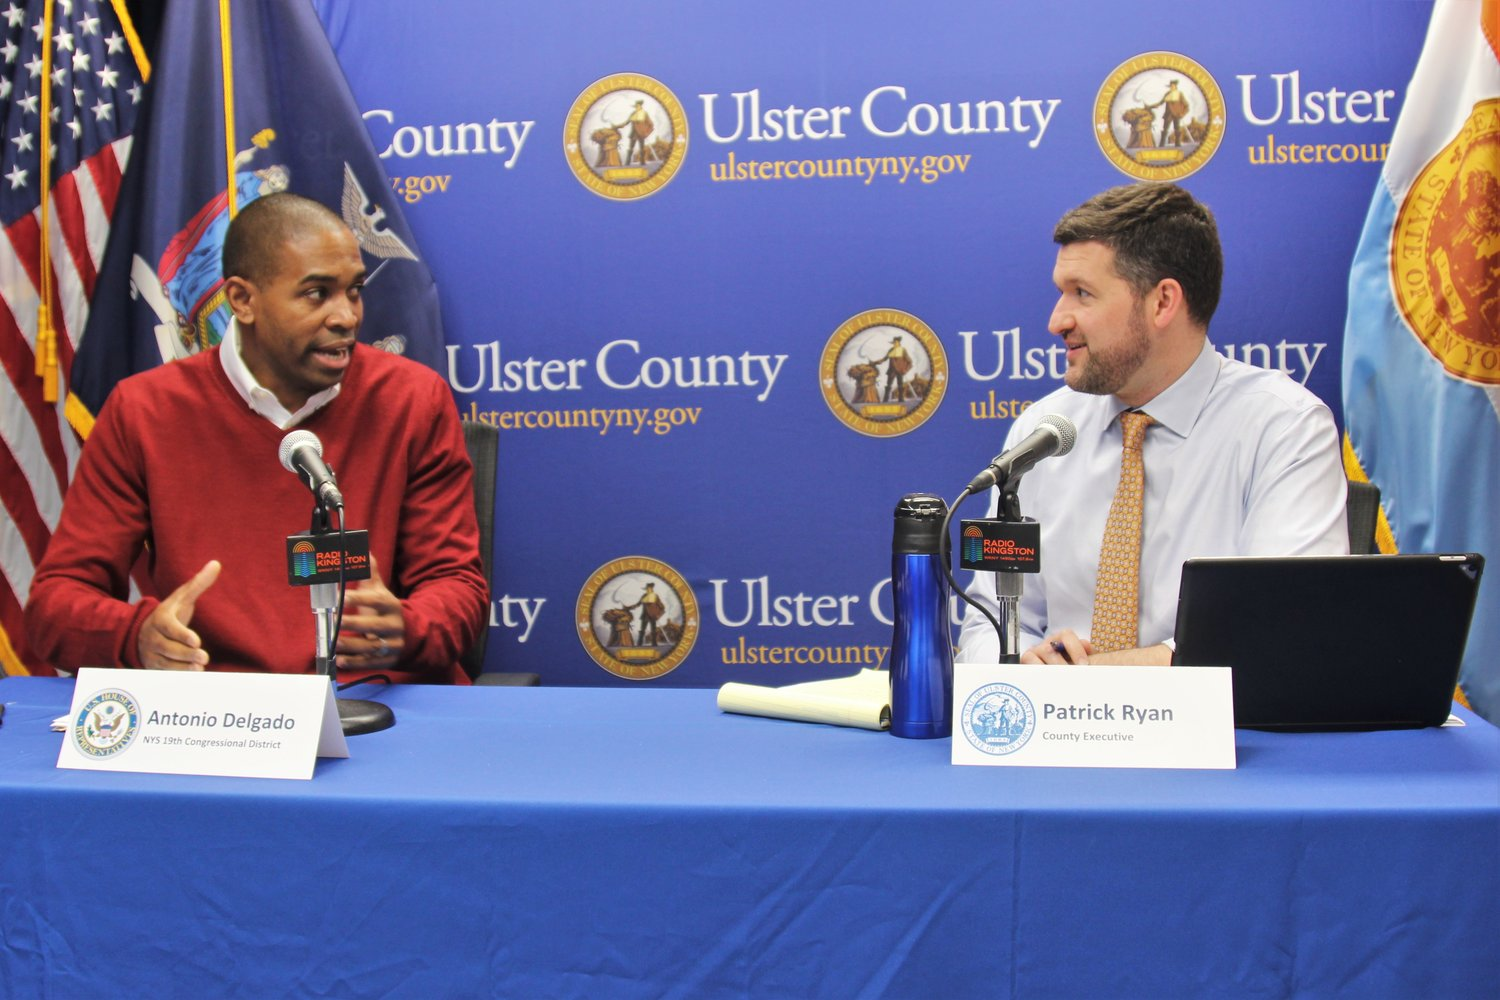 Congressman Antonio Delgado, Ulster County Executive Pat Ryan